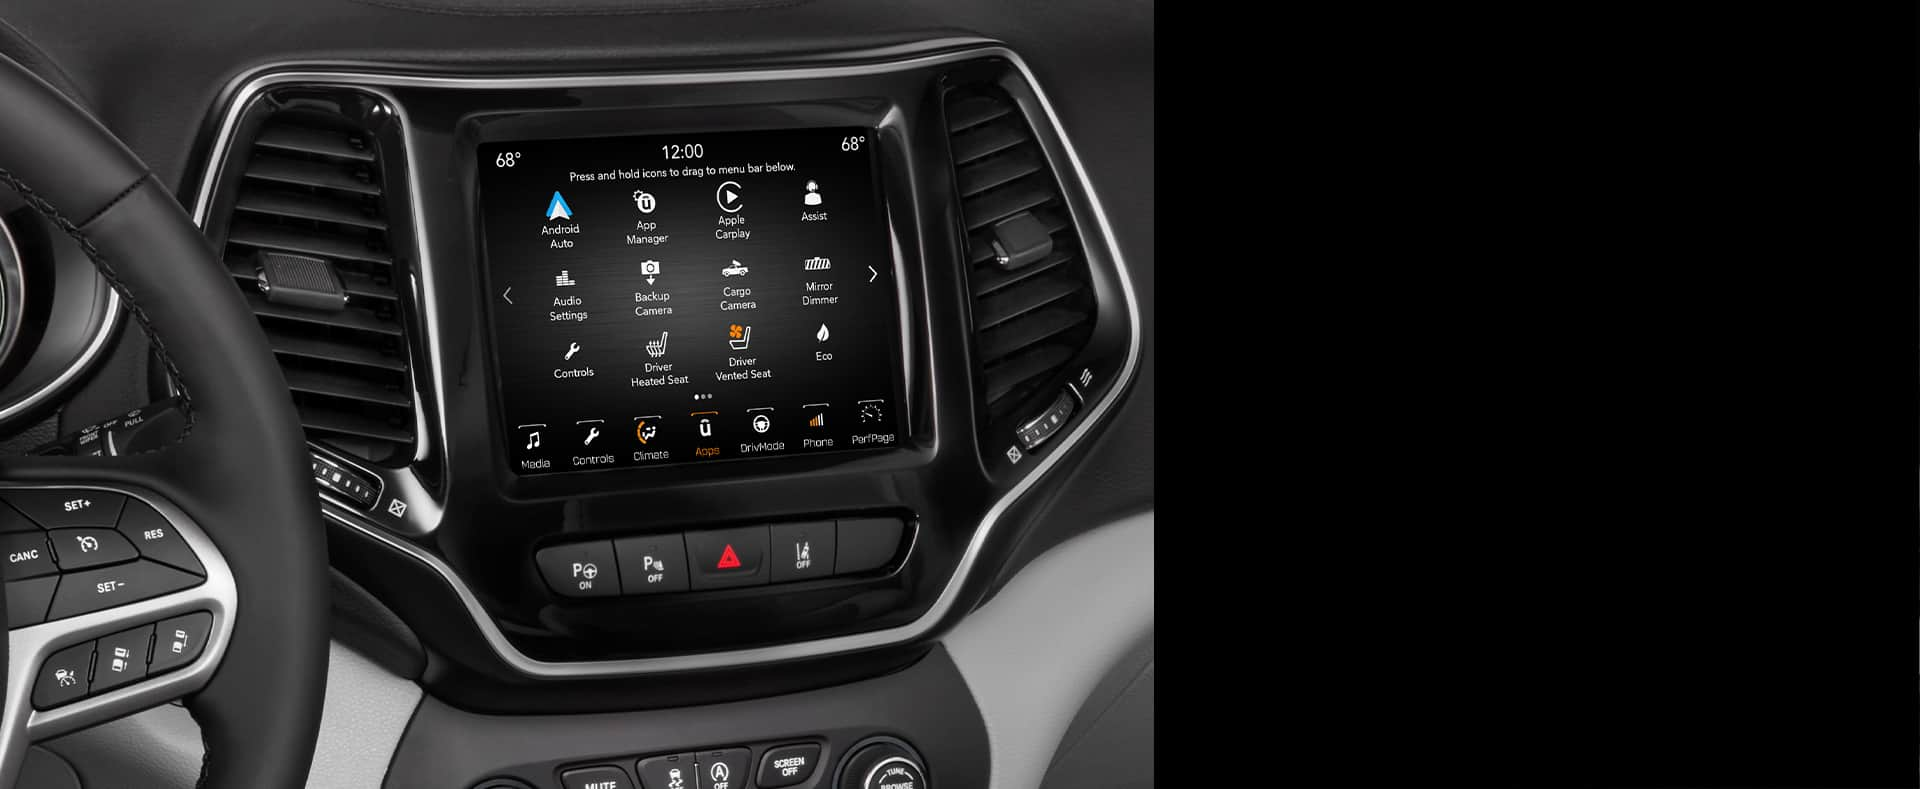 Close-up of touchscreen in Jeep Cherokee.